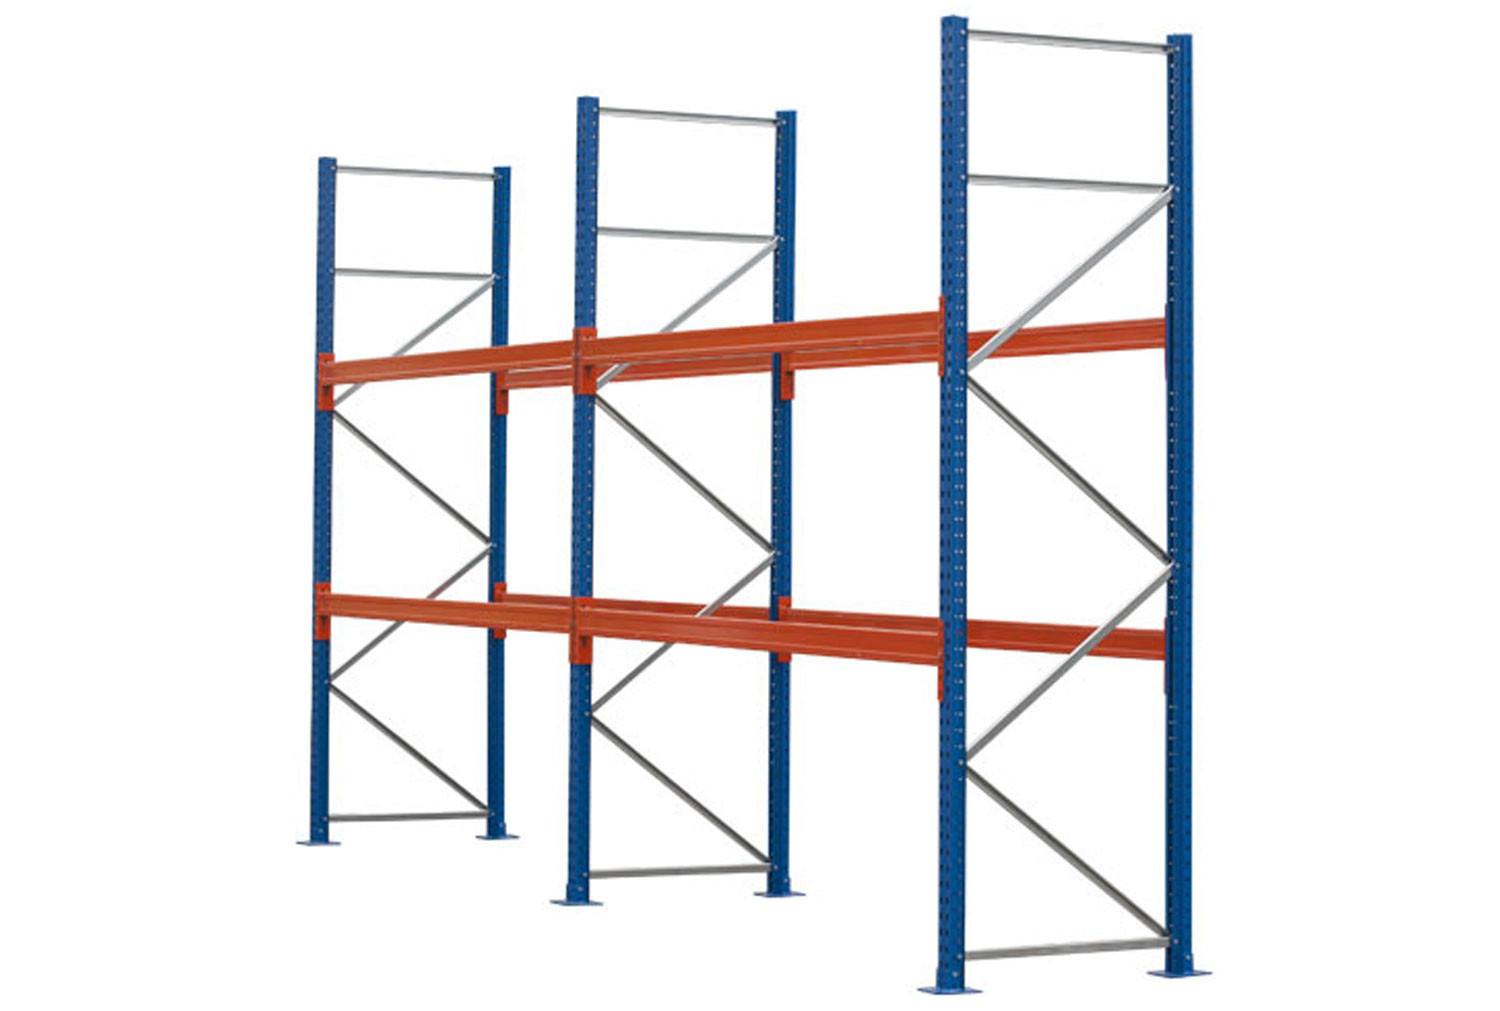 Pallet Racking Kit For 36 Pallets 11289wx4000h